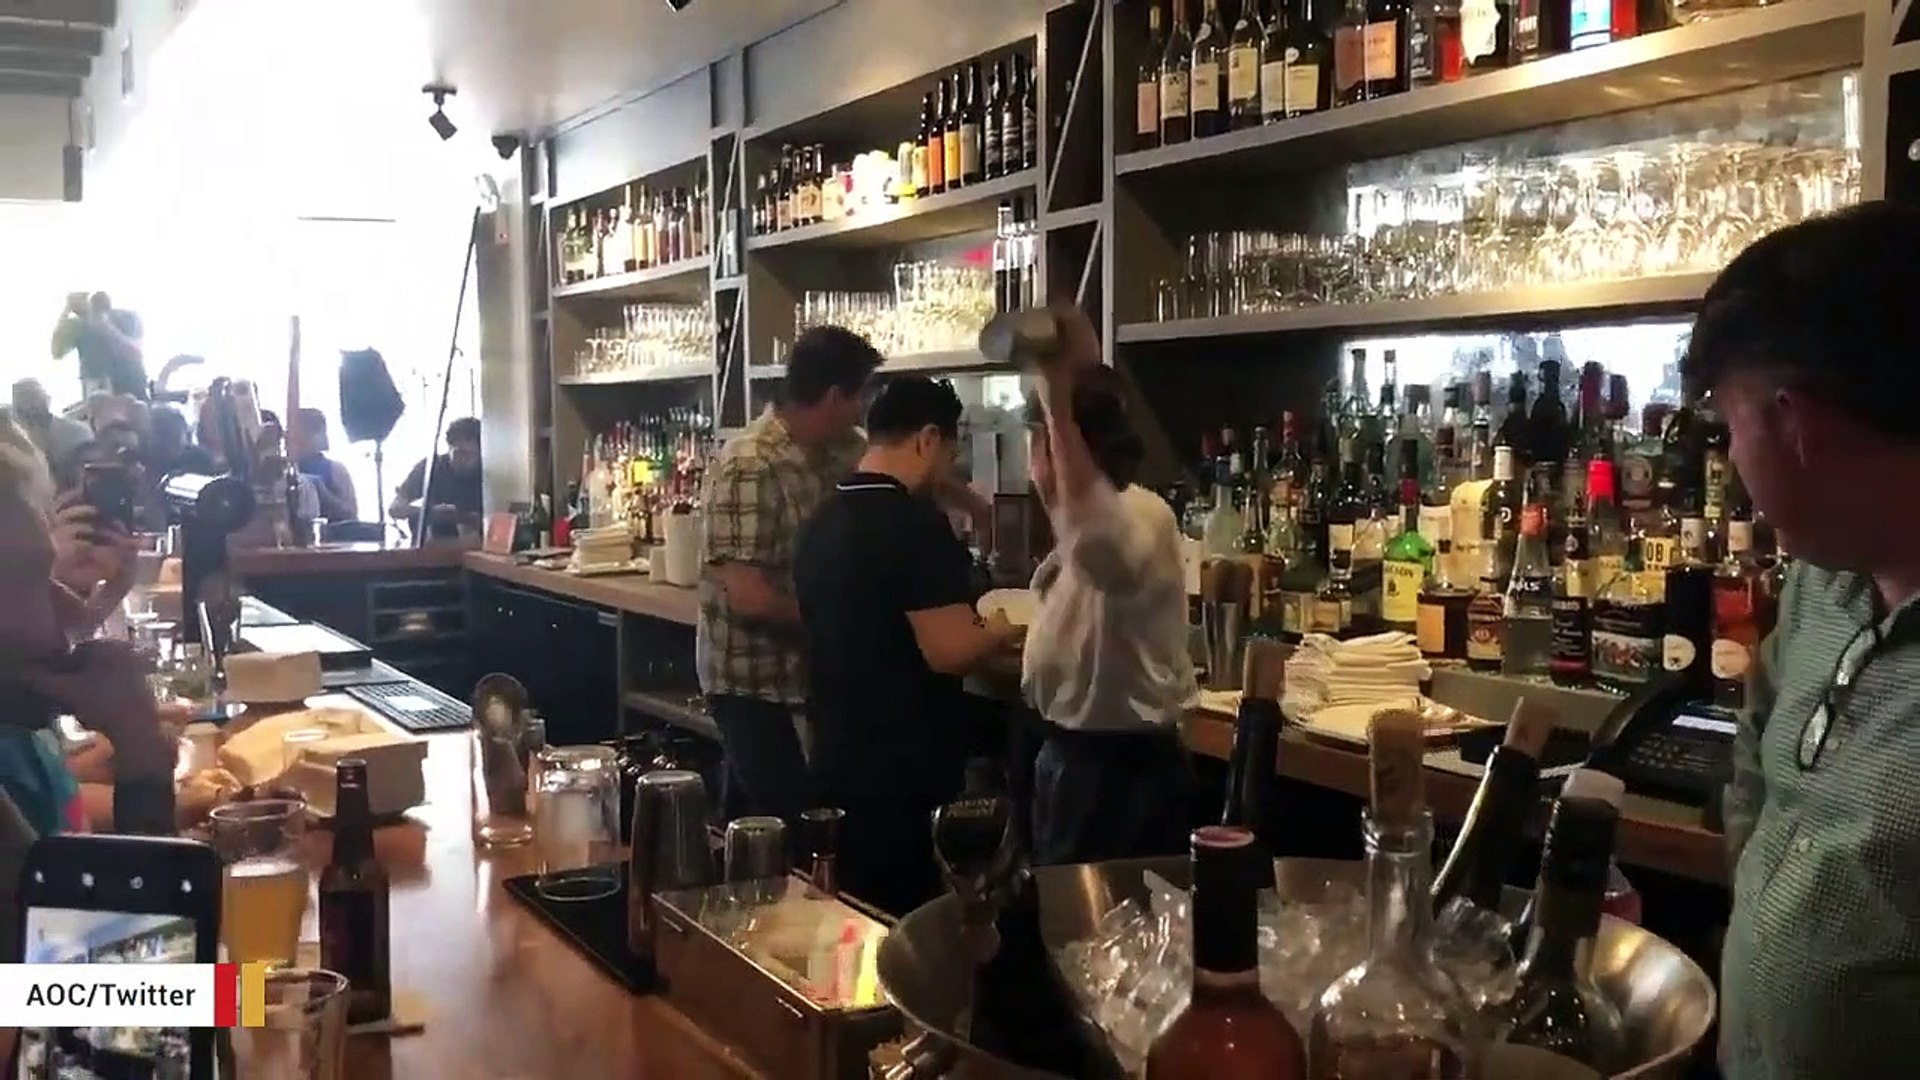 Ocasio-Cortez Shares Video Showing Her Bartending To Promote Wage Act